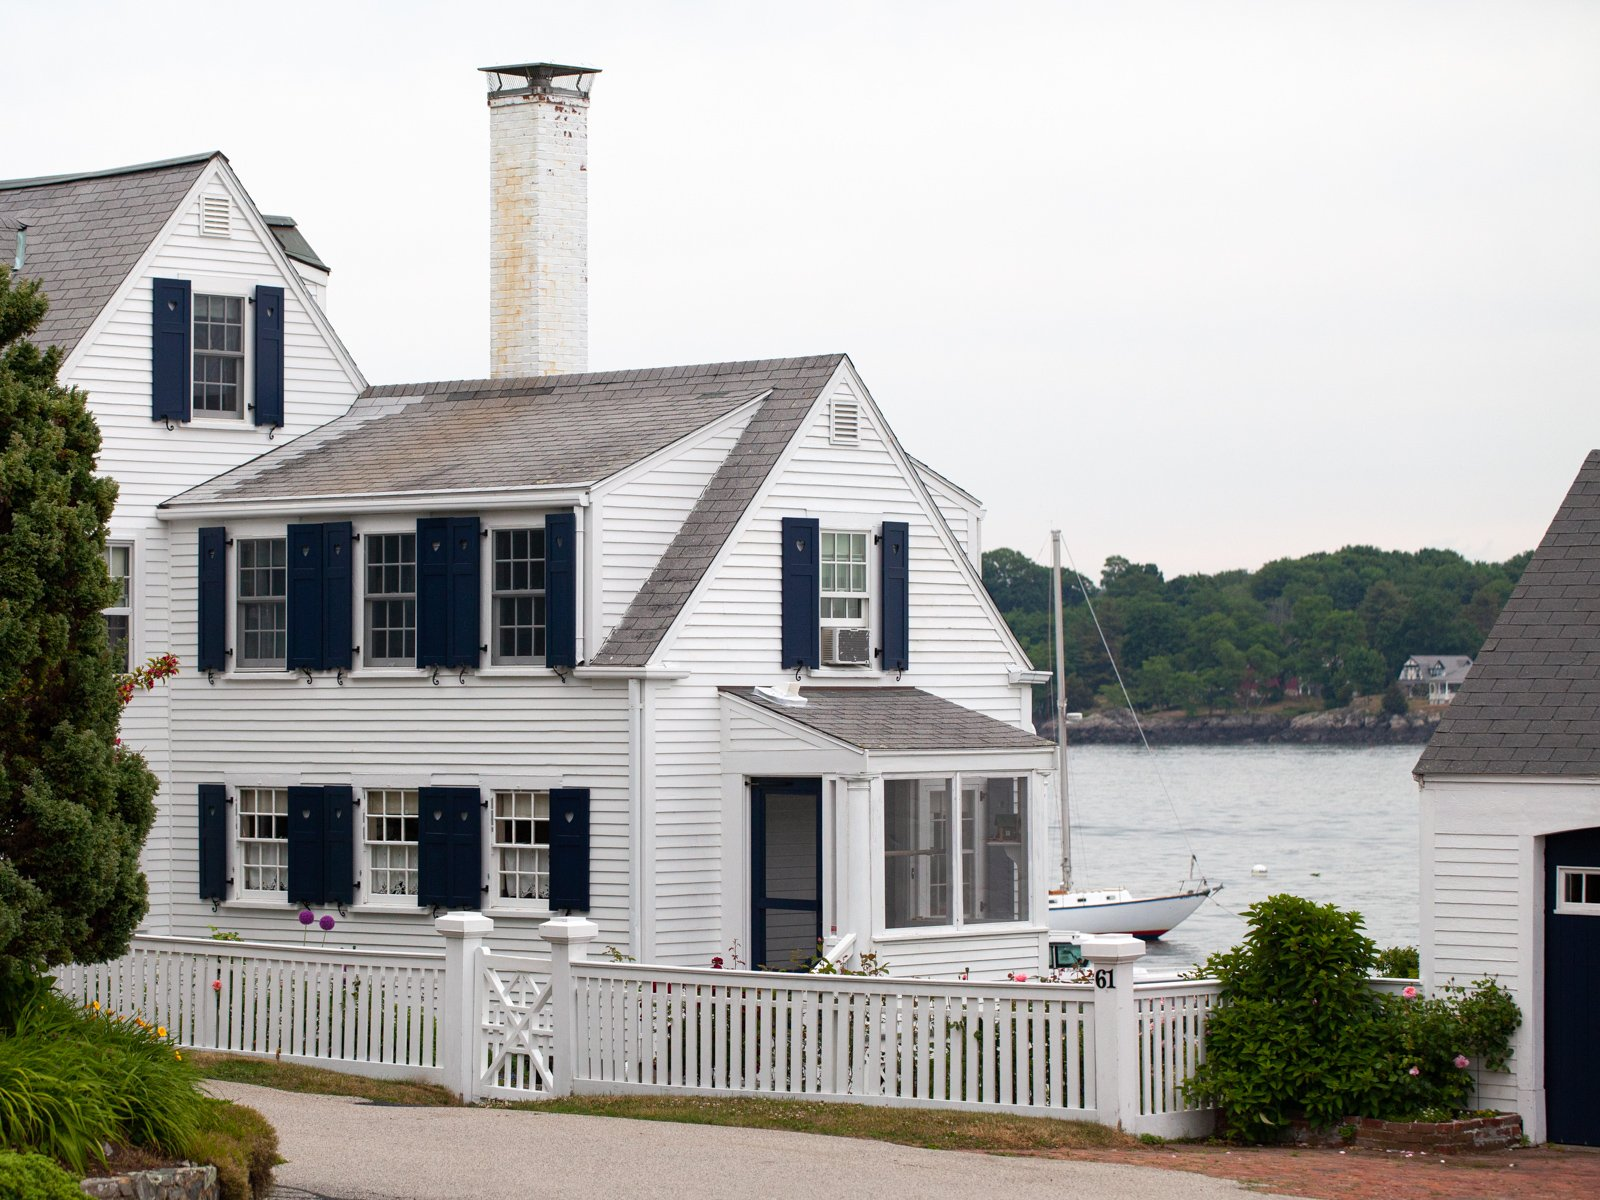 a coastal home with a white picket fence in New Castle, NH